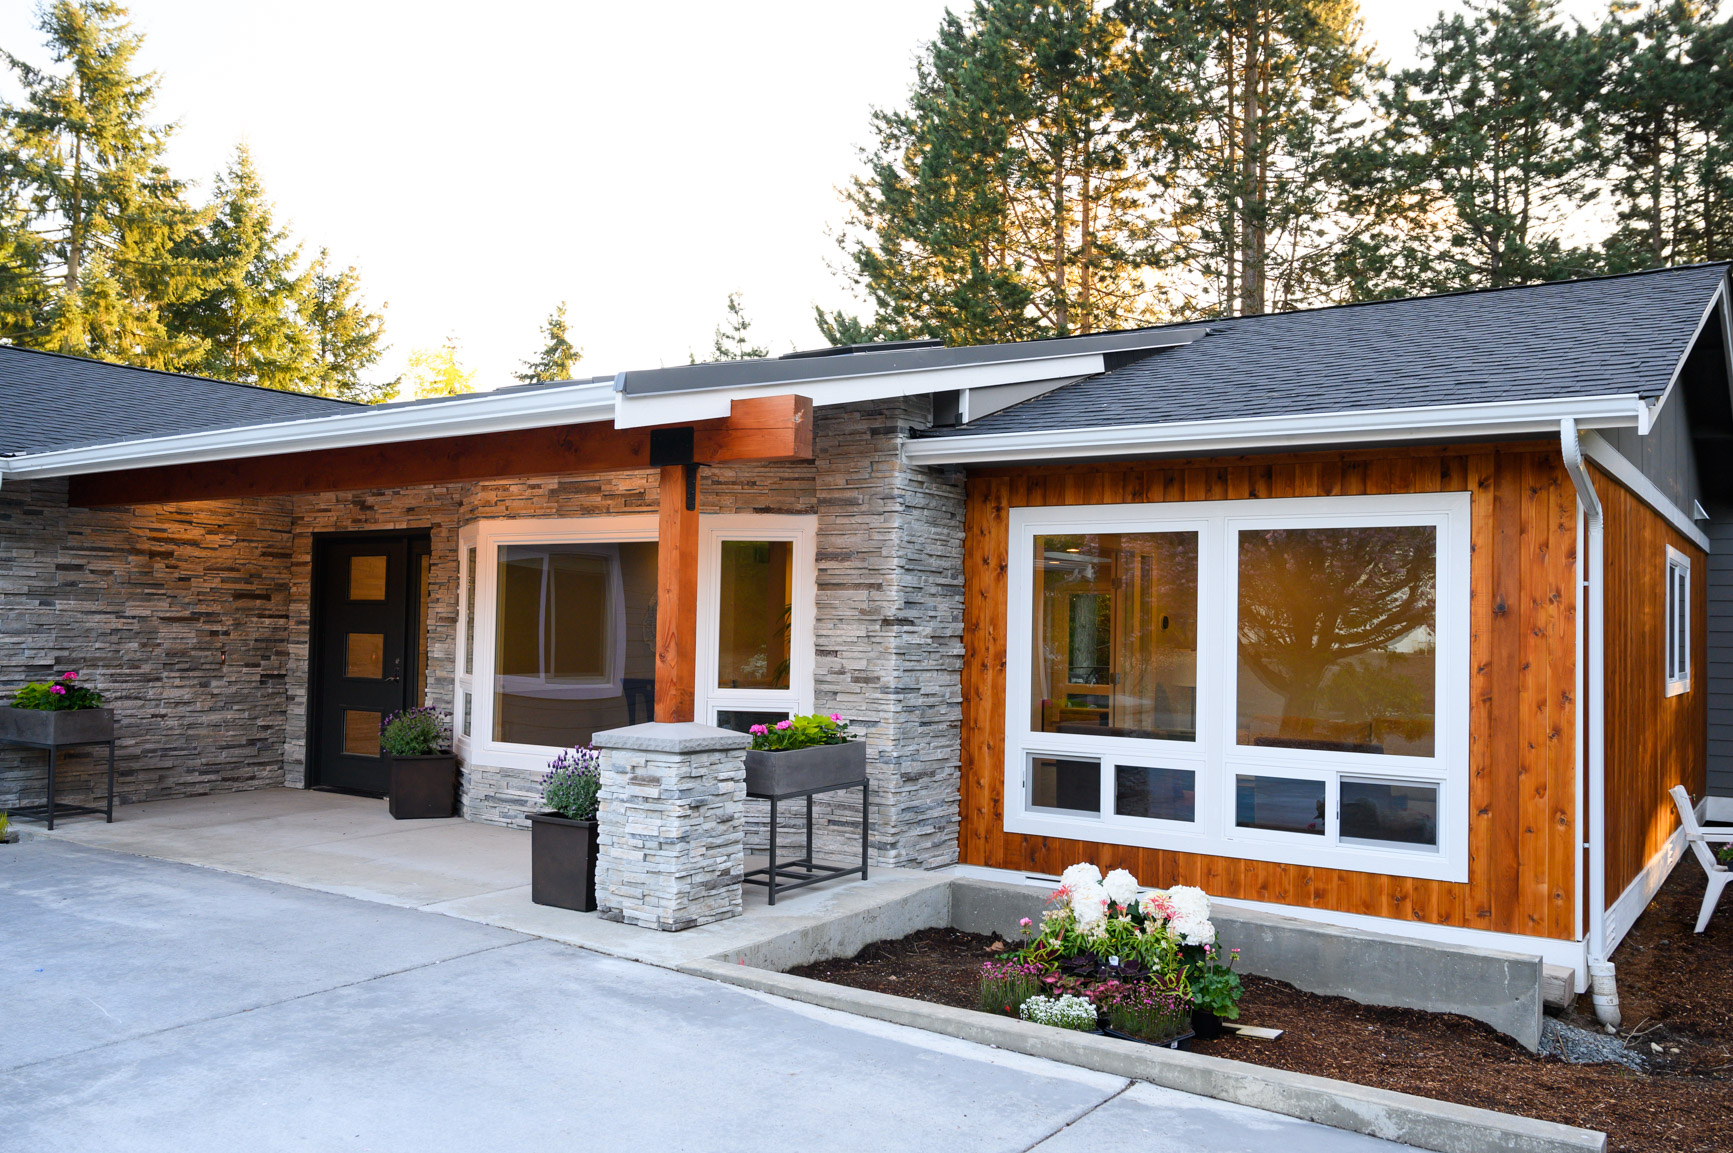 Modern Home - Rebuilt from ground up and completed in 2019. We worked with architects and healthcare consultants to ensure the most optimal floor layout and design for seniors.